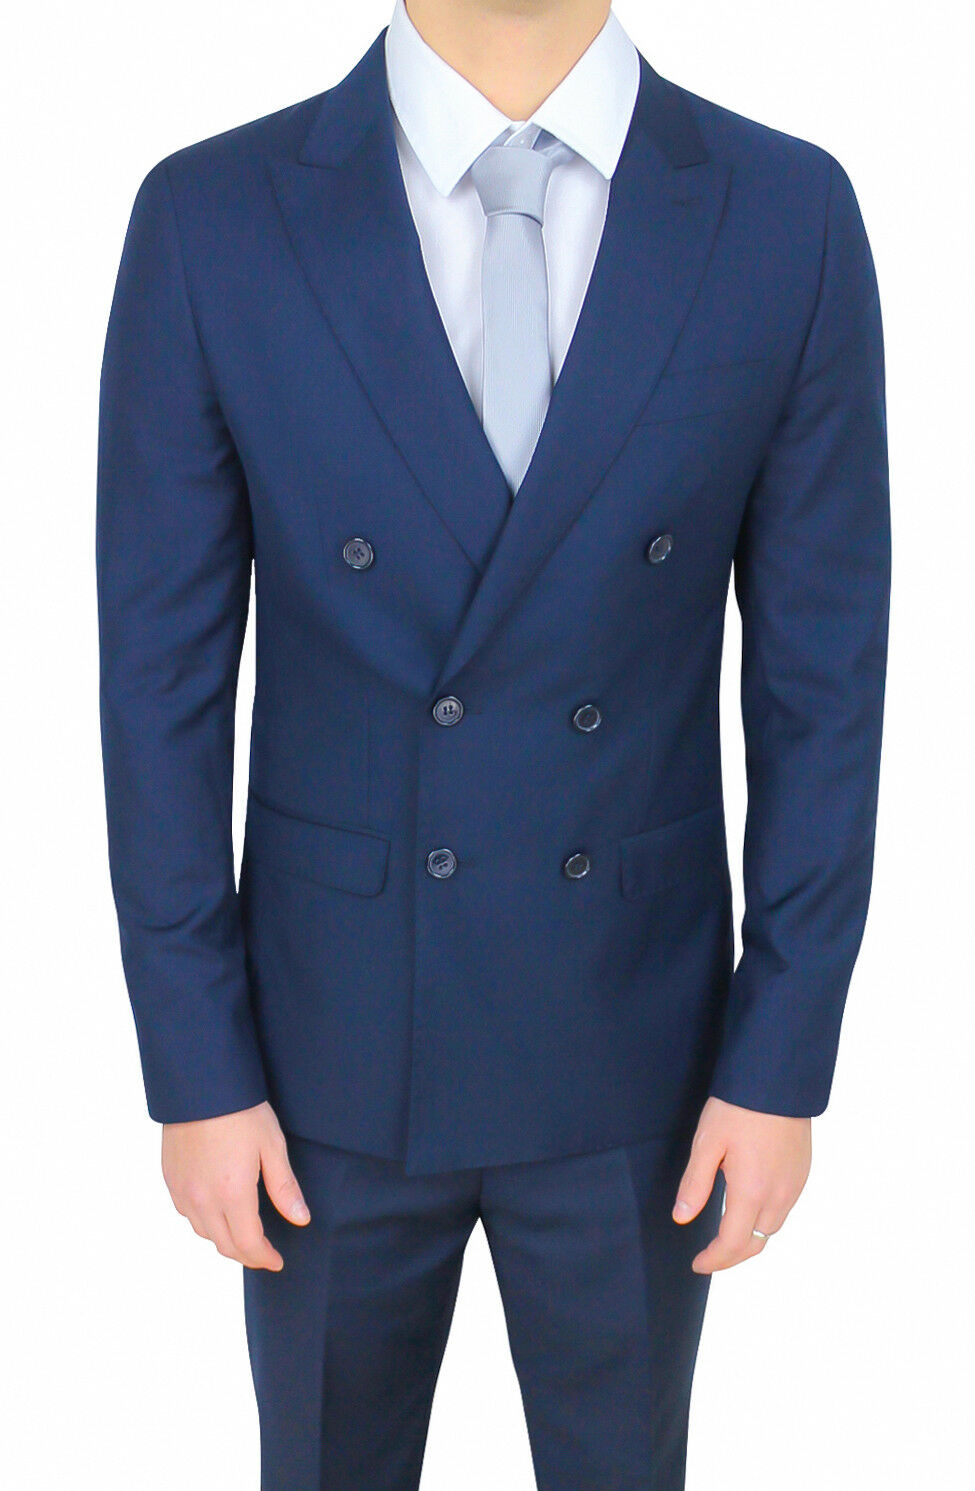 Men's suit sartoriale double-breasted satin blue formal bluee smoking ceremony